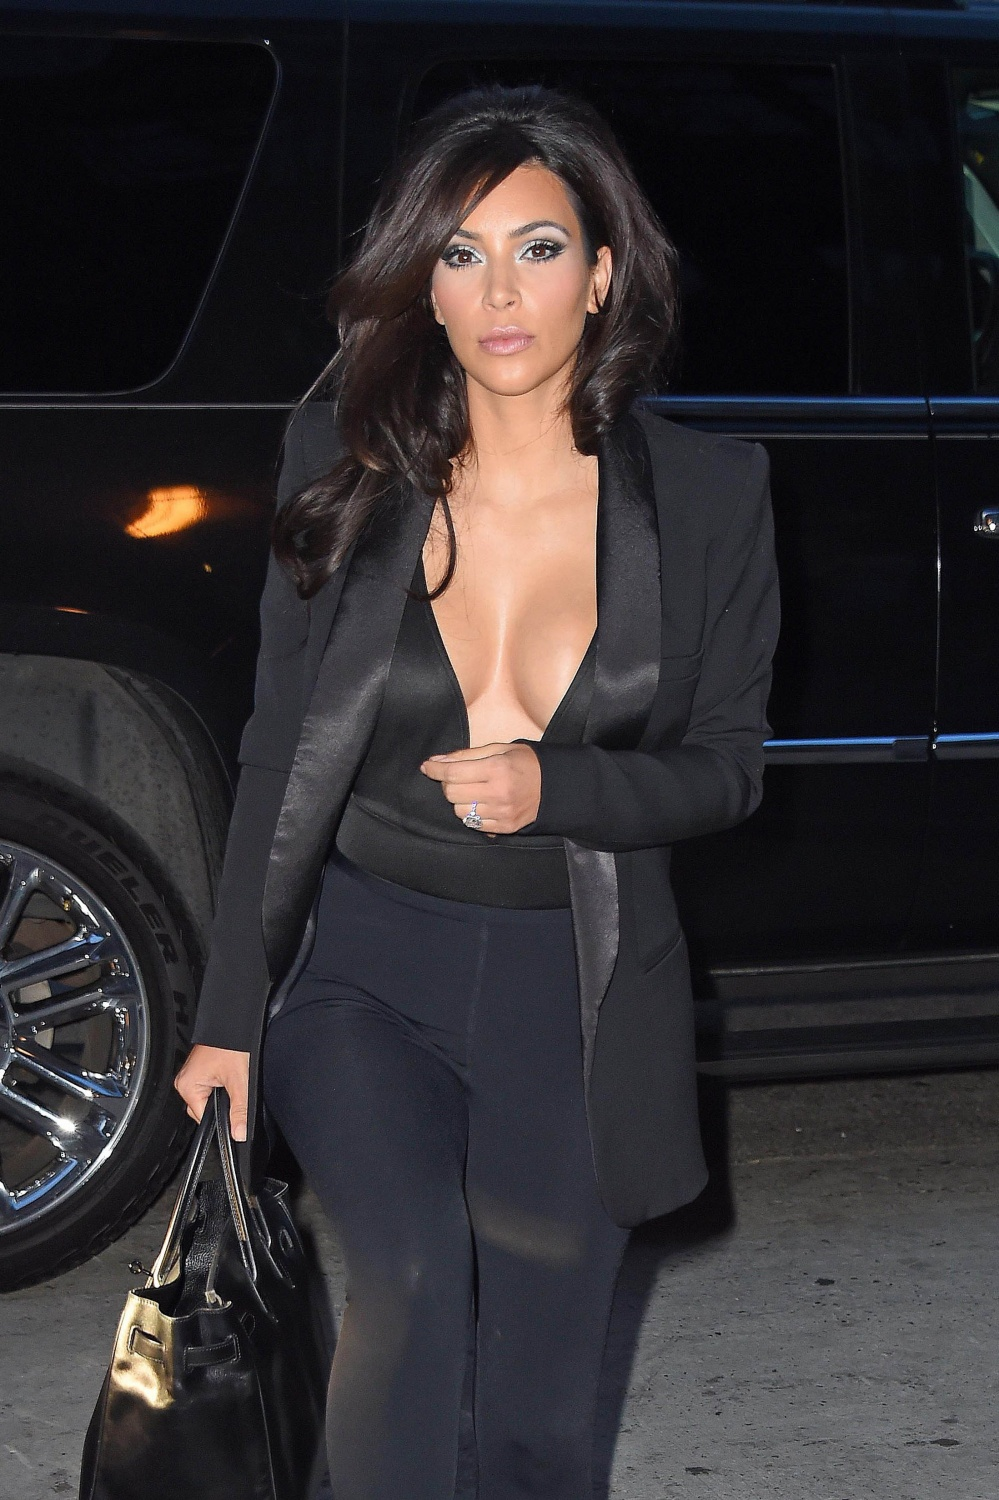 NEW YORK, NY - JUNE 16: Kim Kardashian is seen on June 16, 2014 in New York City. (Photo by NCP/Star Max/GC Images)